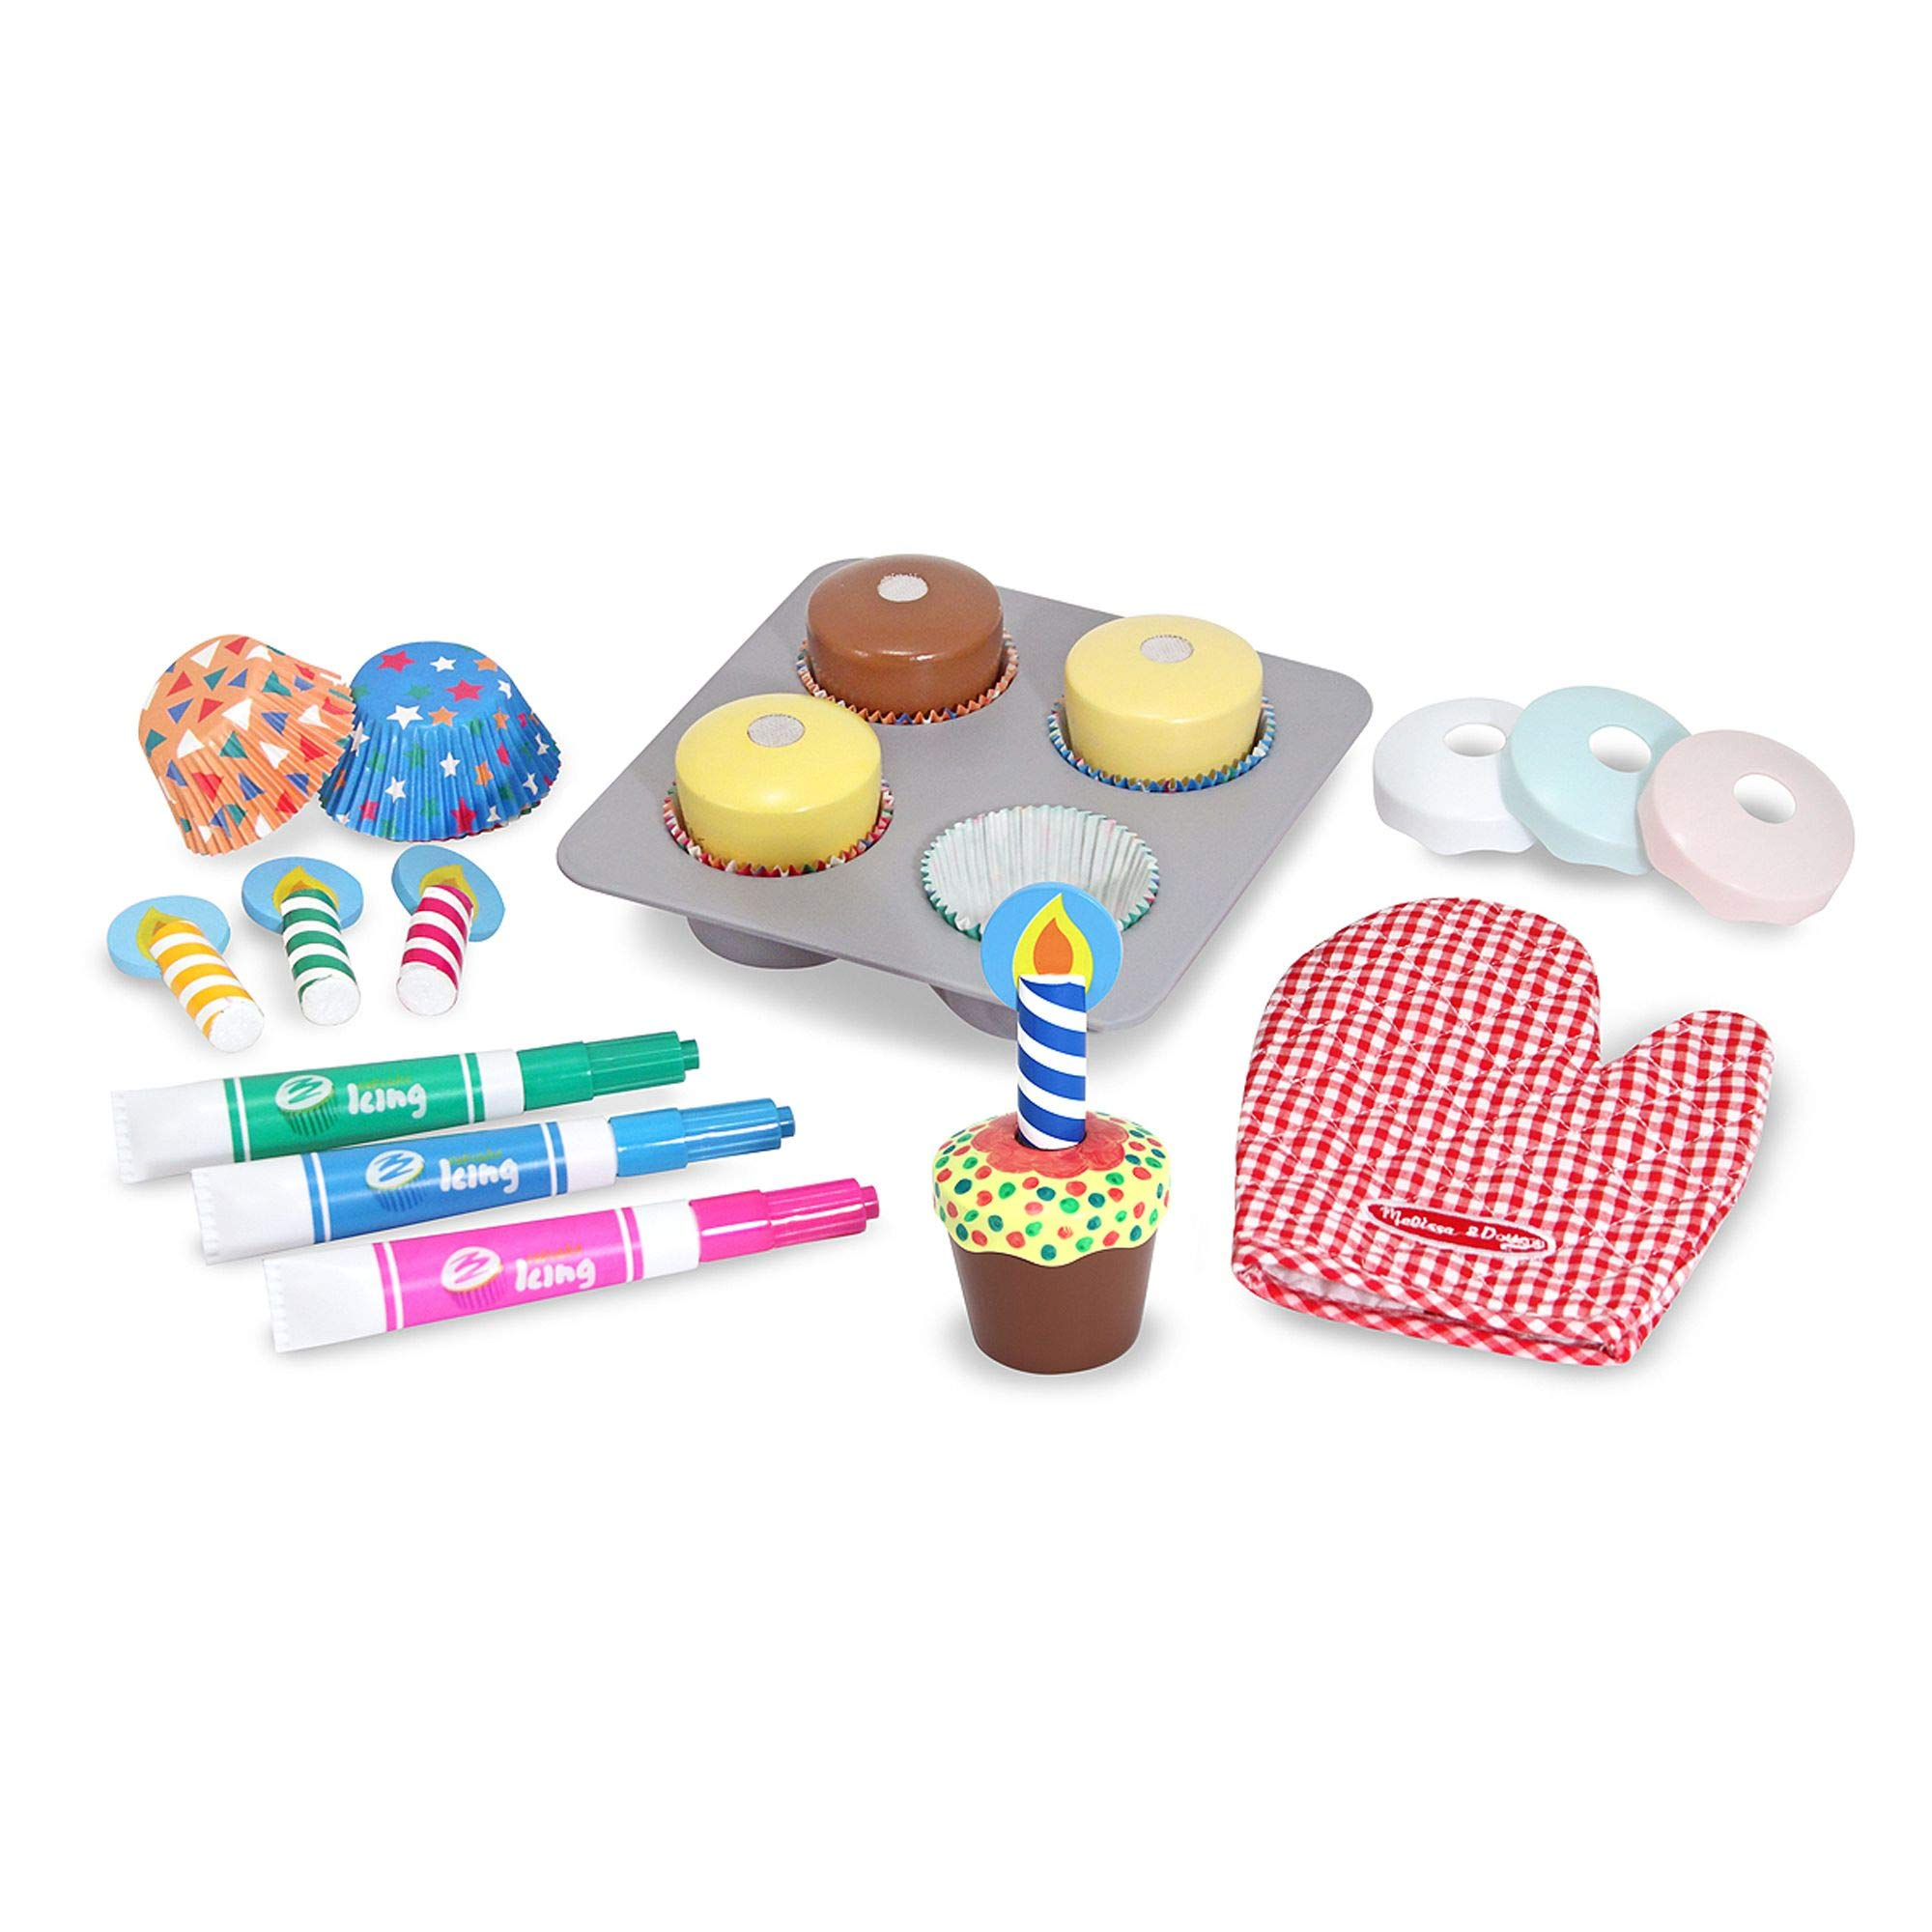 Melissa & Doug Bake & Decorate Cupcake Set (Pretend Play, Colorful Wooden Play-Food Set, Materials, 22 Pieces, Great Gift for Girls and Boys - Best for 3, 4, and 5 Year Olds) by Melissa & Doug